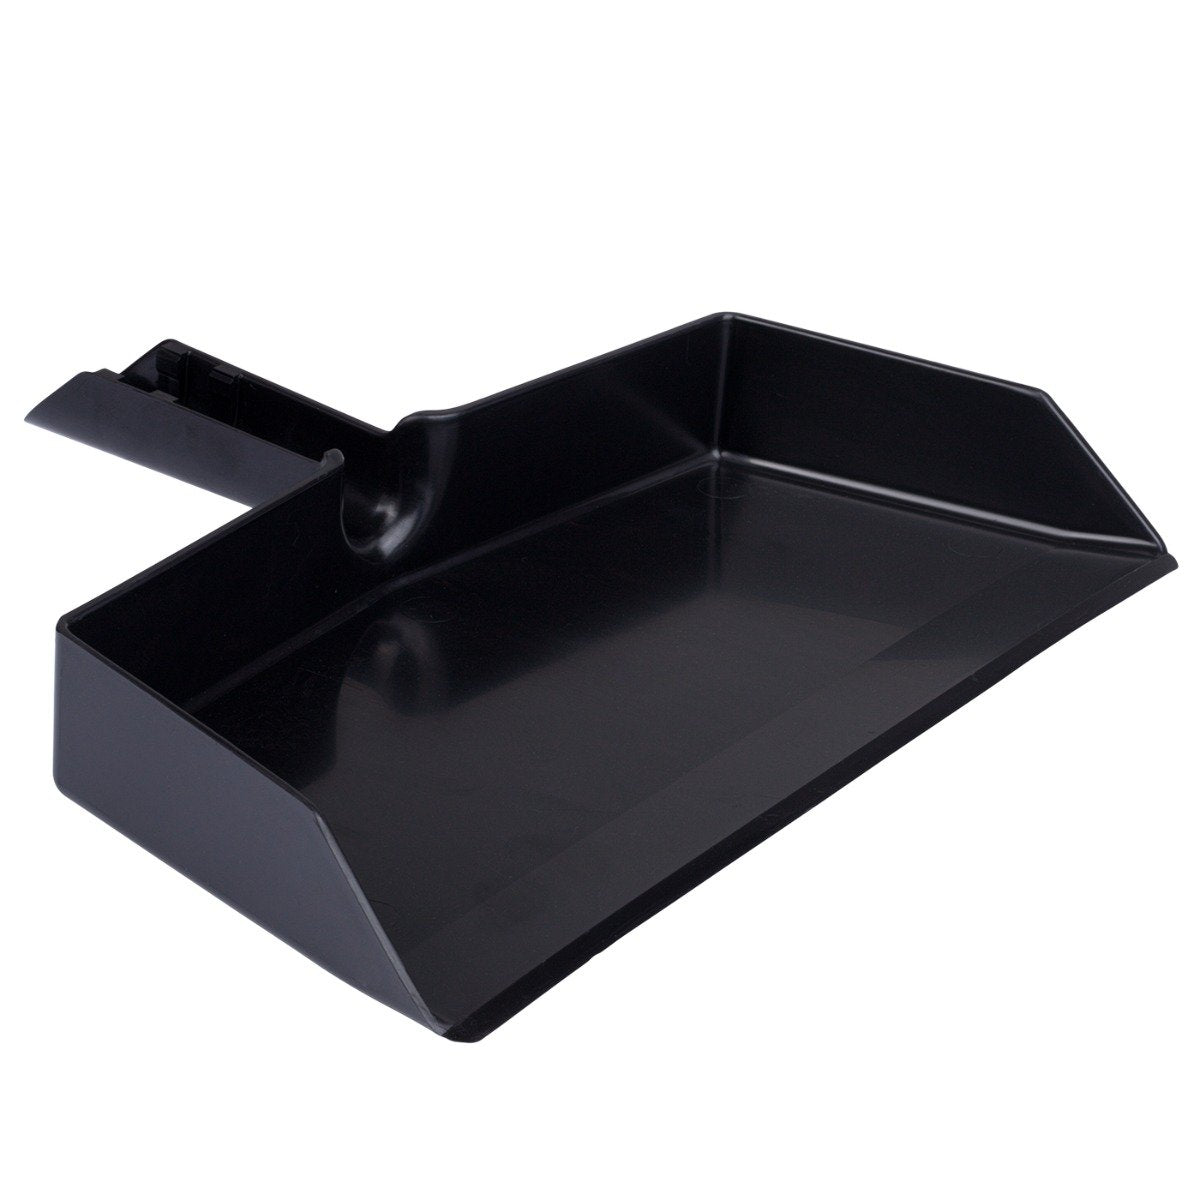 Black Plastic Dustpan, Wide Sweep, Handheld Easy Grip Handle w/ Clip-on-Dustpans-Fuller Brush Company